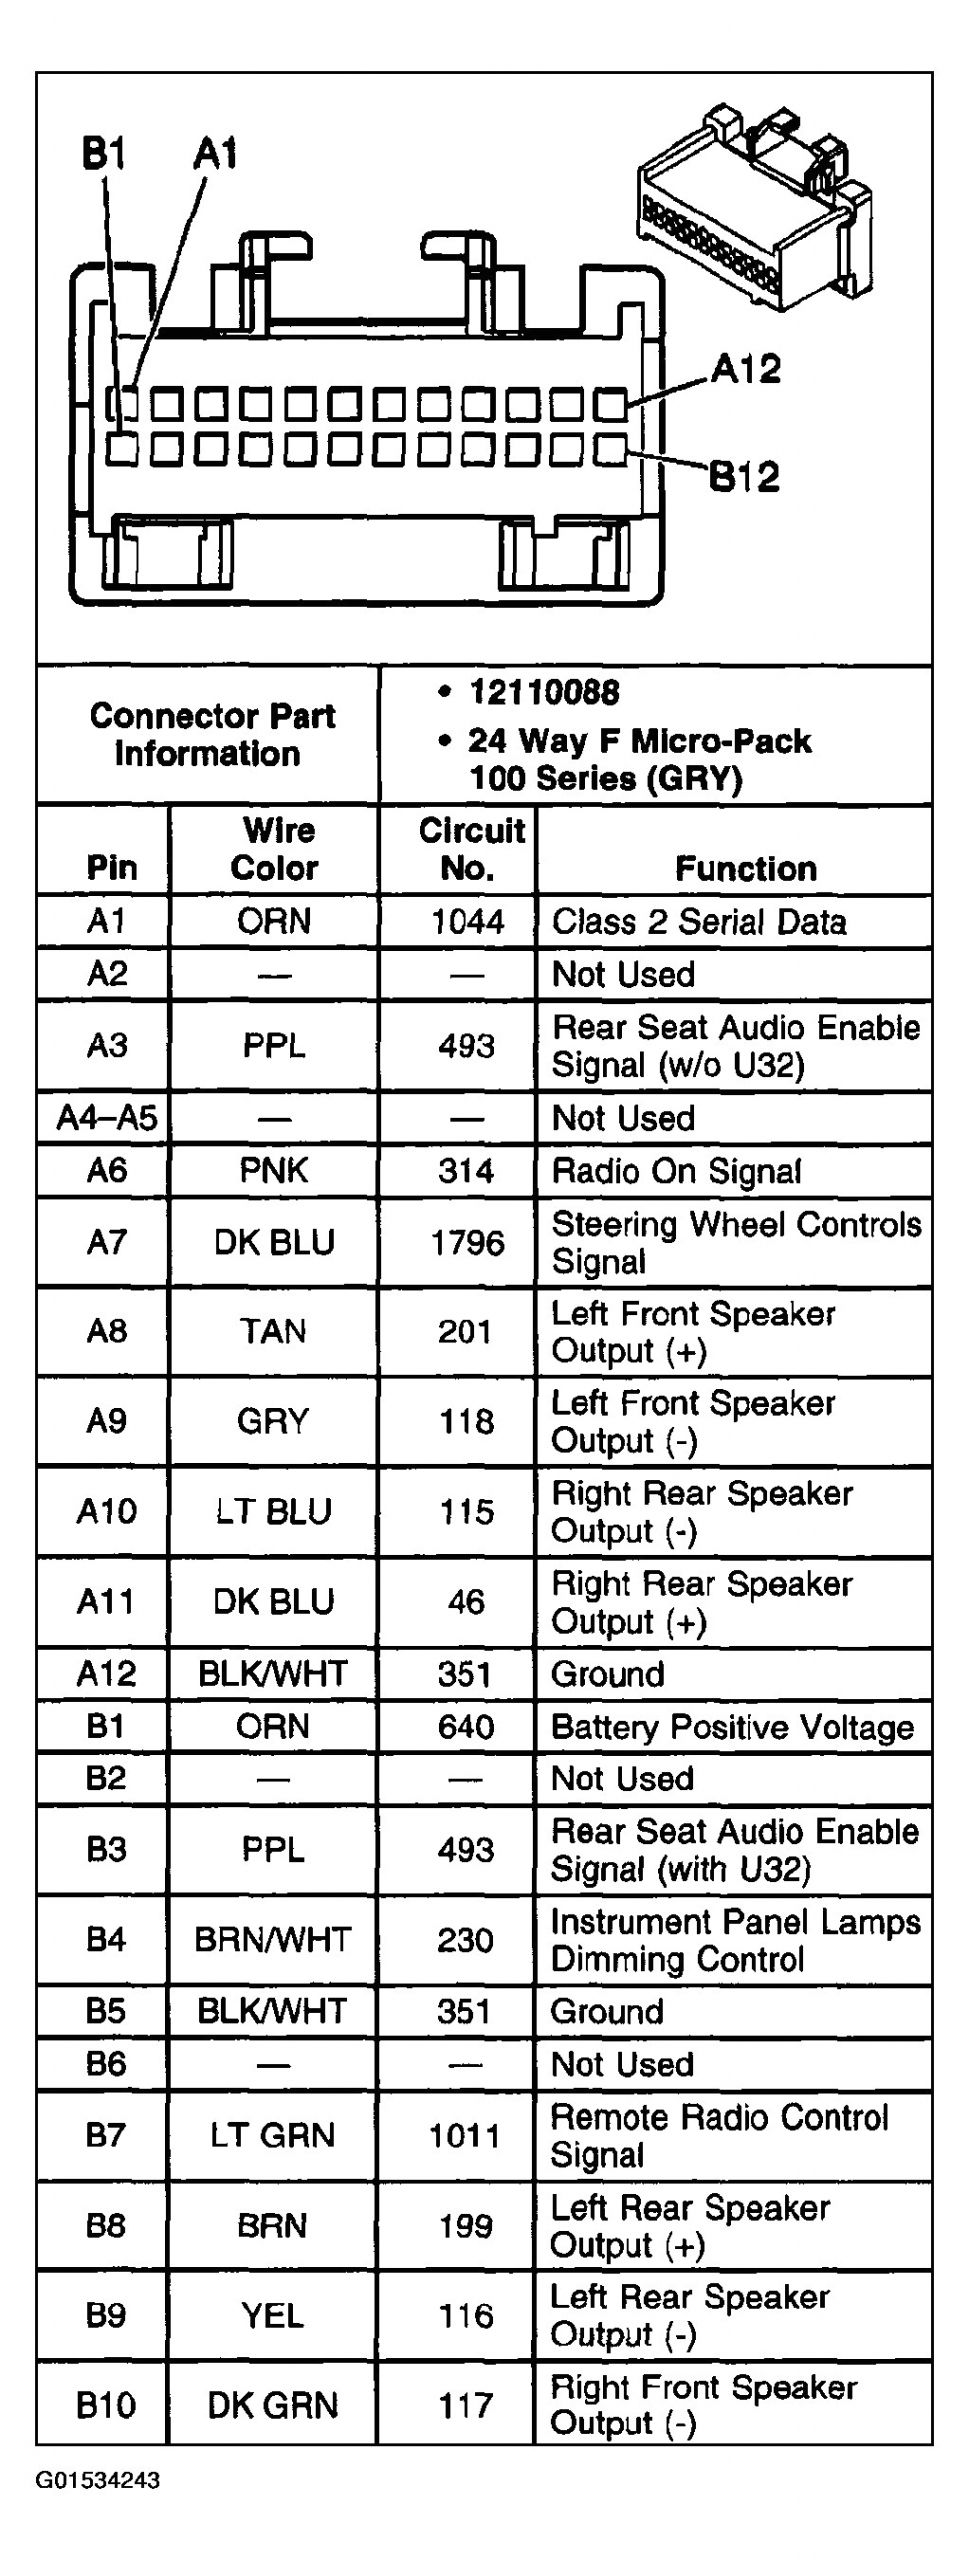 2004 trailblazer radio wiring diagram simple 9 2002 chevy stereo jpg